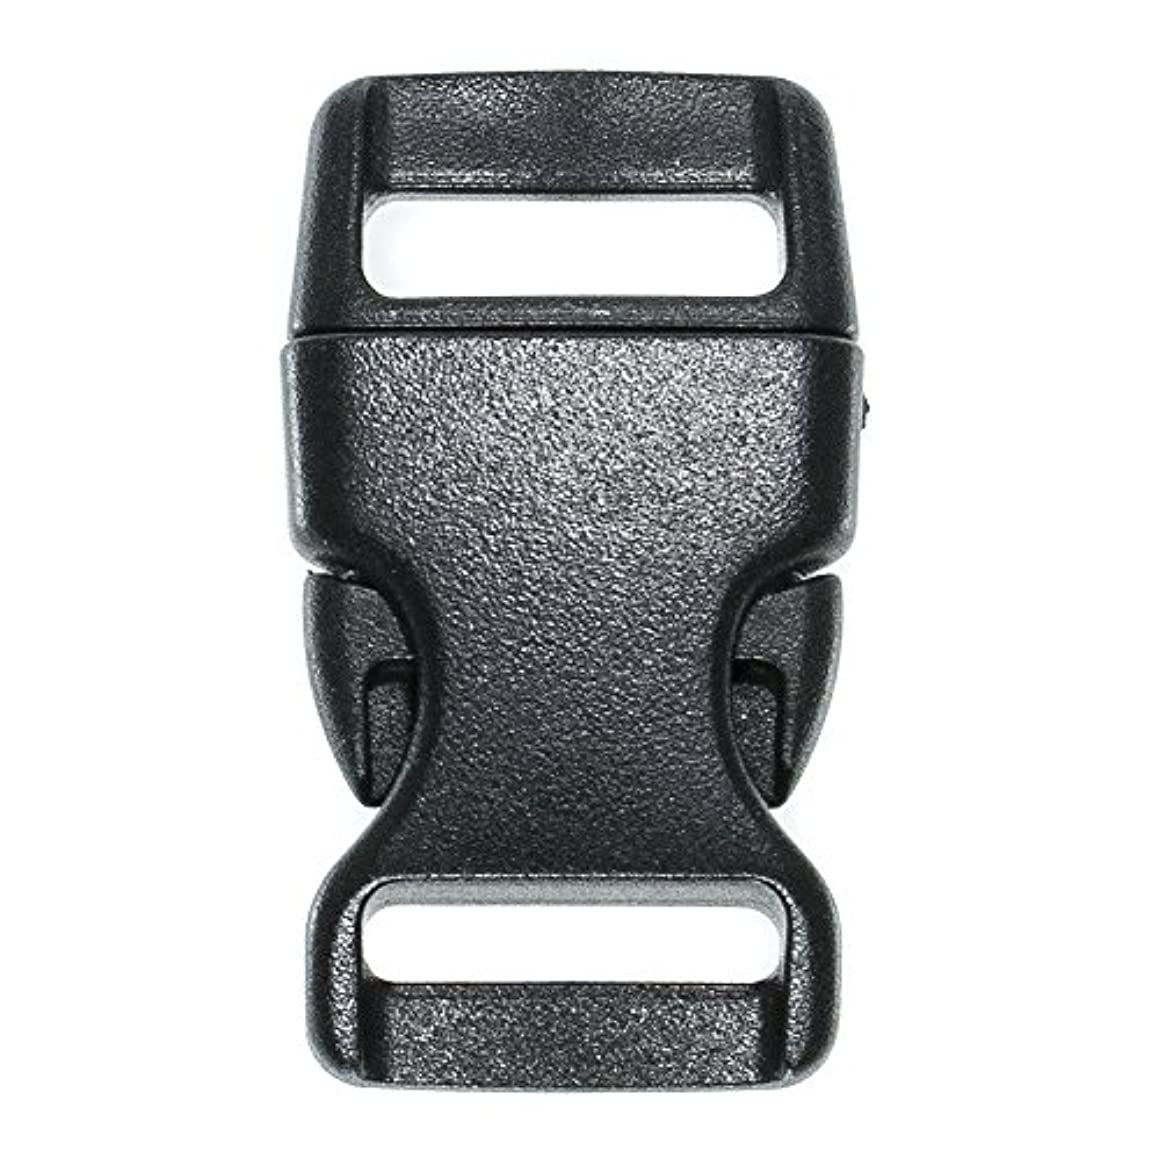 PARACORD PLANET Brand Contoured Side Release Black Buckle – Multiple Size and Quantity